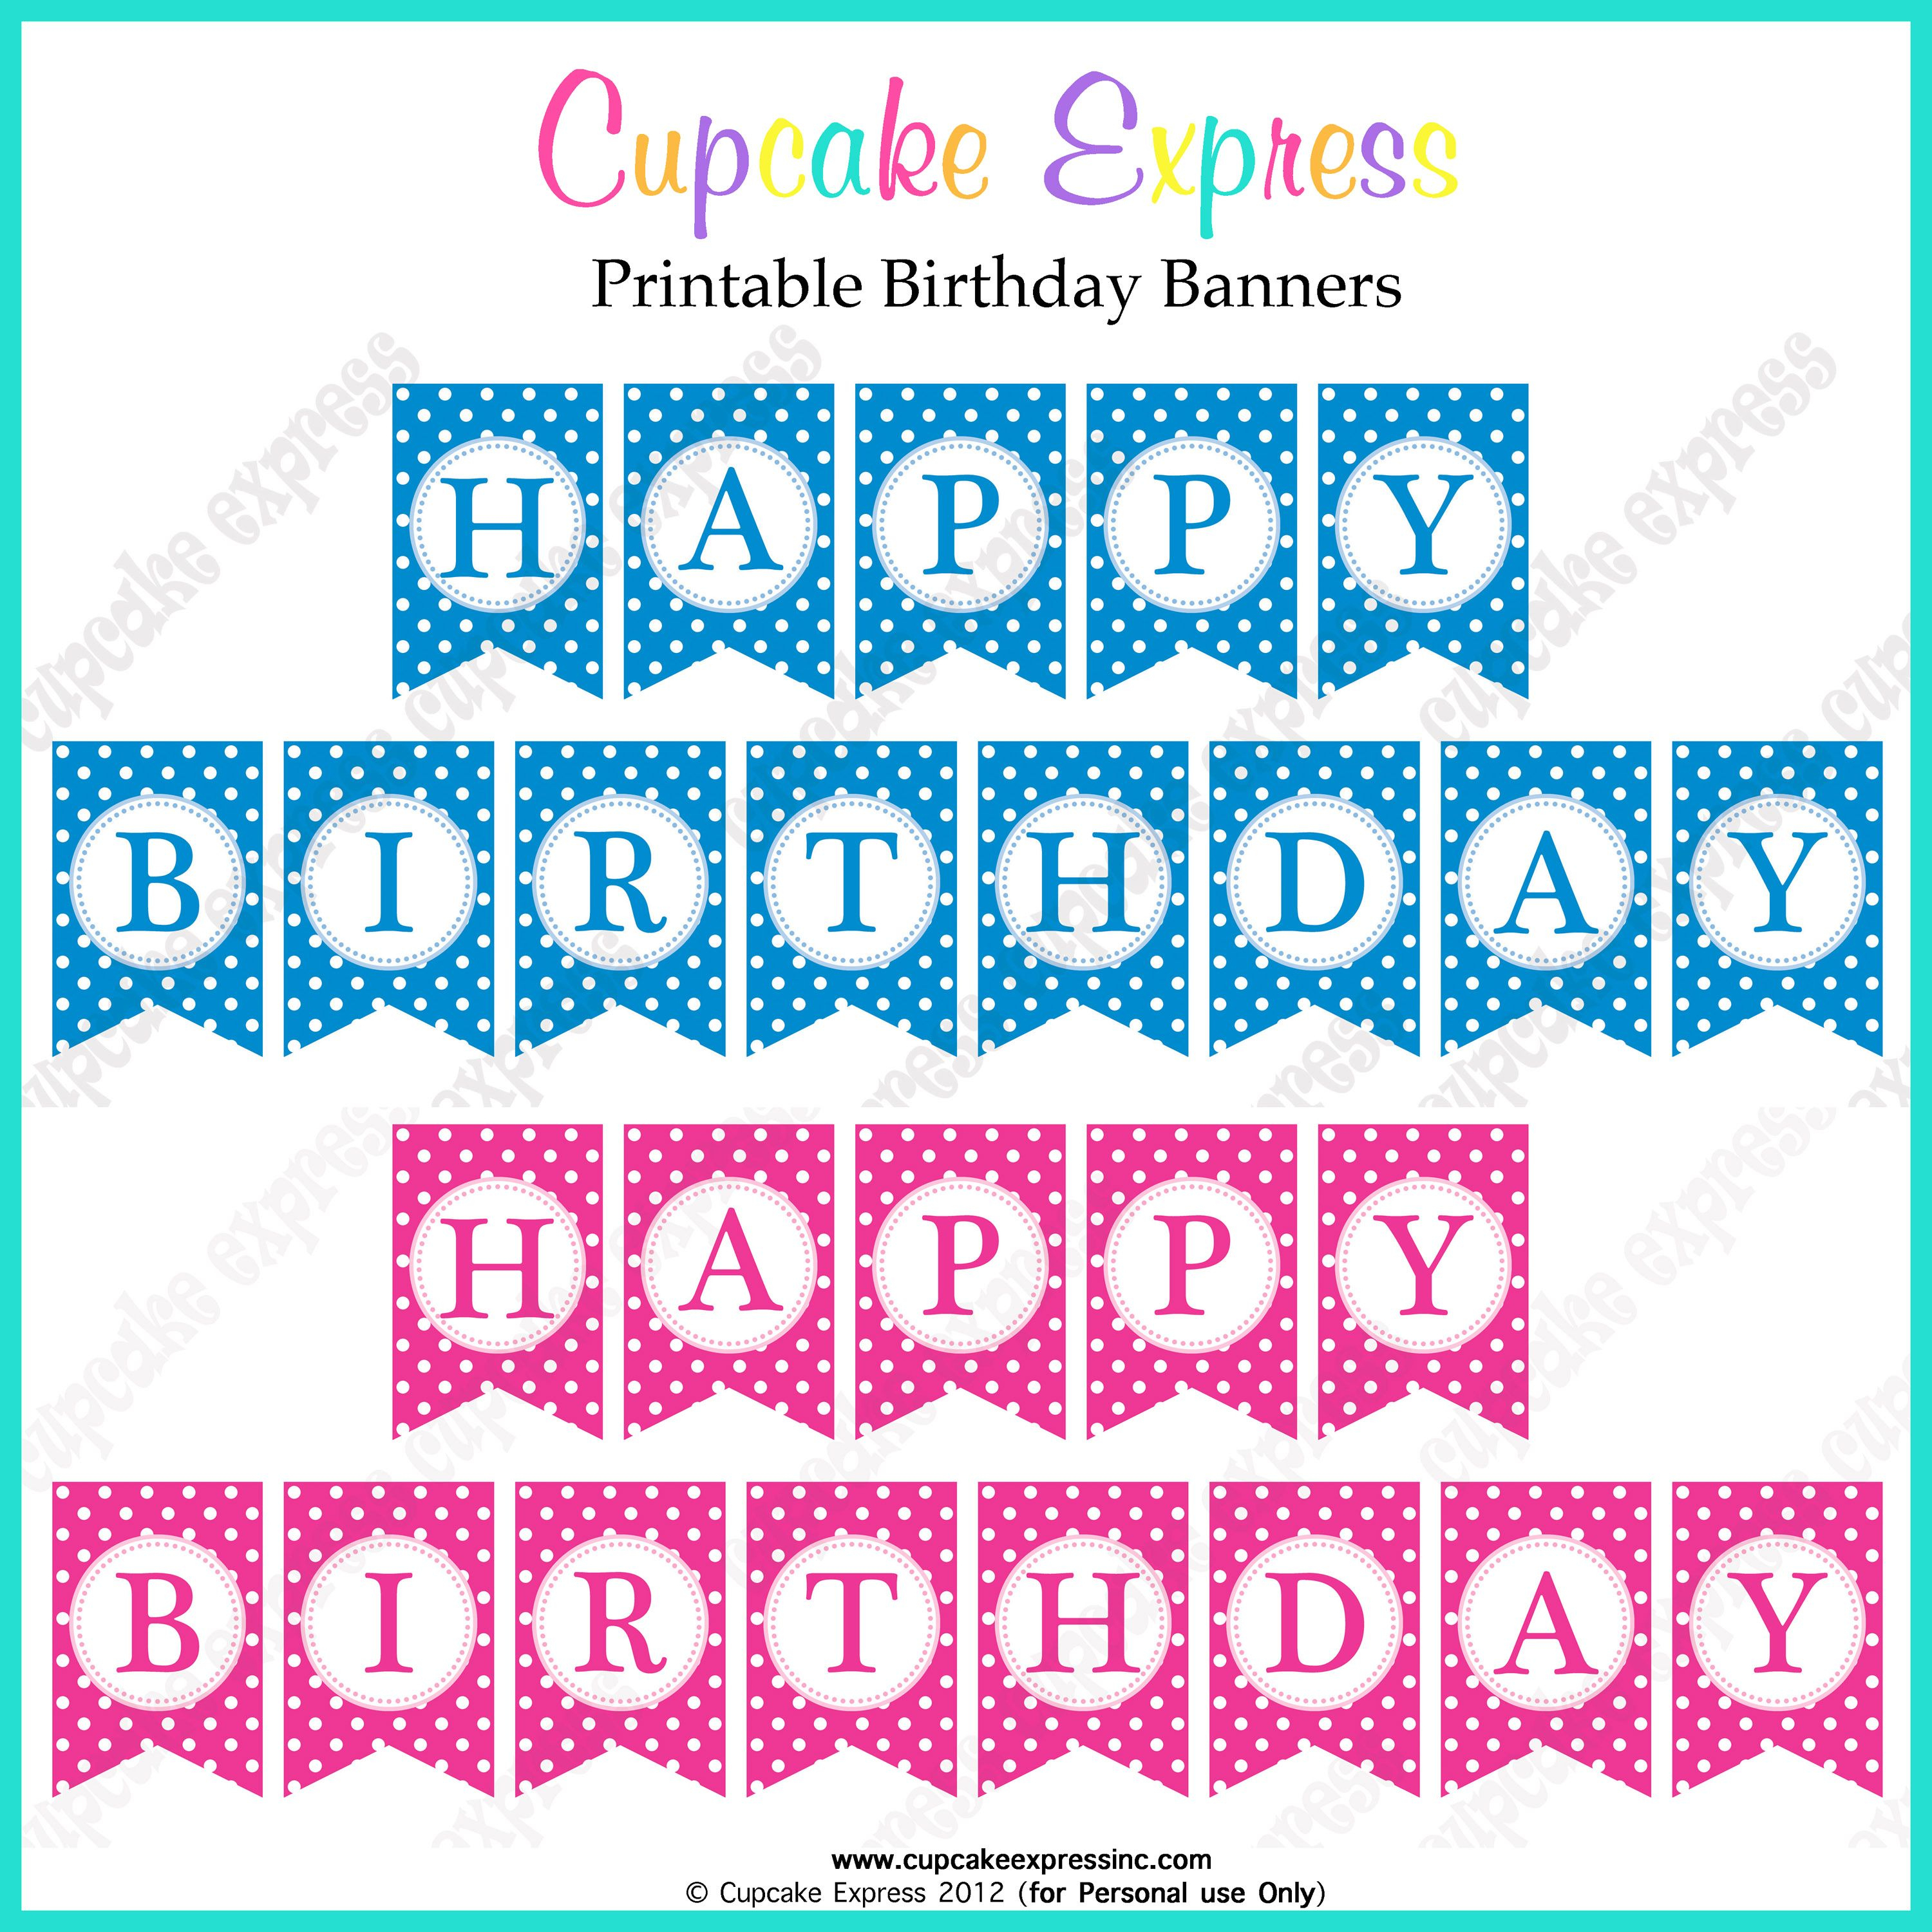 Free Printable Happy Birthday Banners Pink Blue | Free Printables - Happy Birthday Free Printable